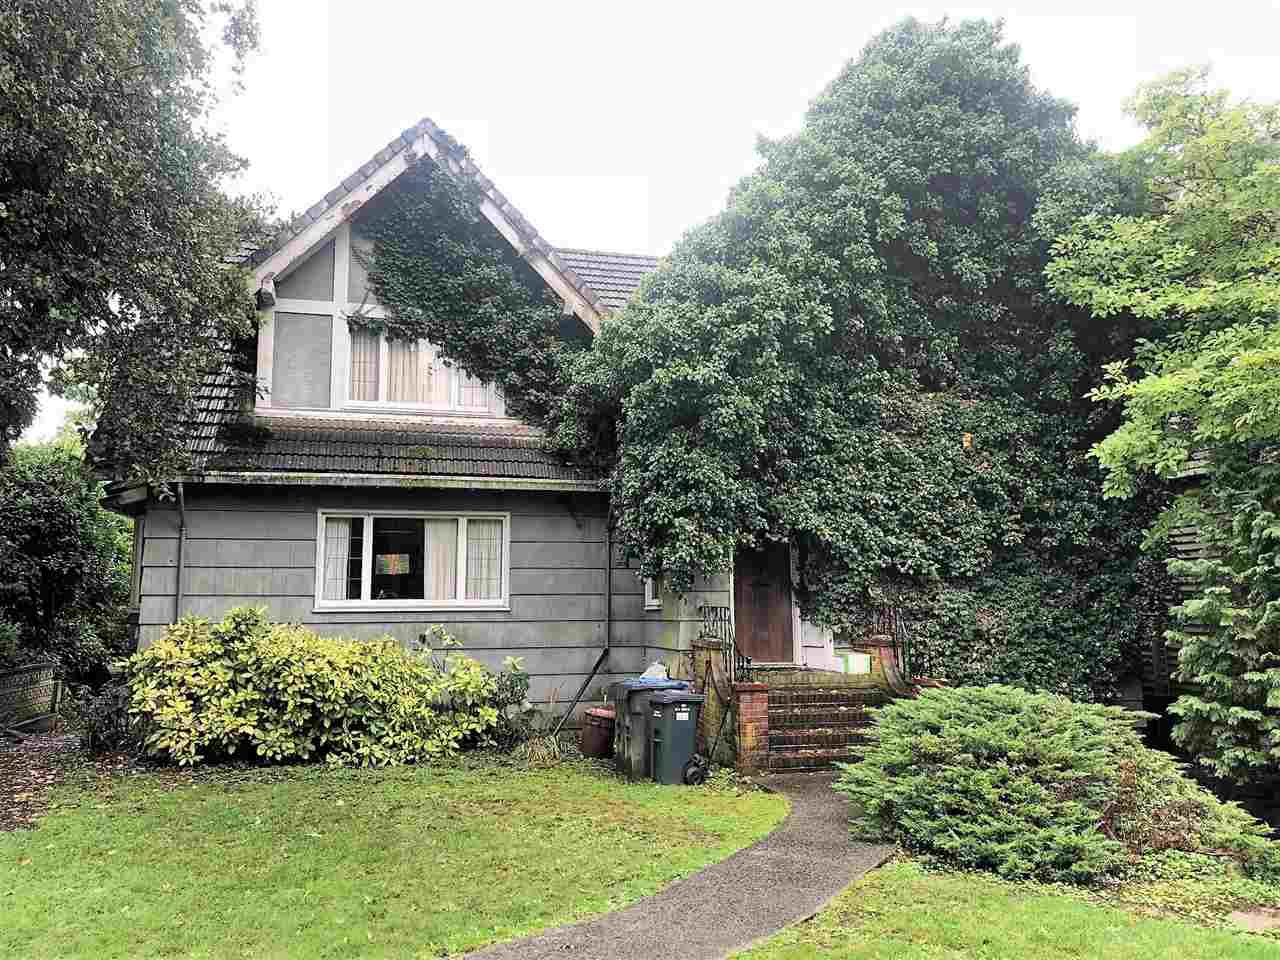 """Main Photo: 114 QUEENS Avenue in New Westminster: Queens Park House for sale in """"Queens Park"""" : MLS®# R2337670"""